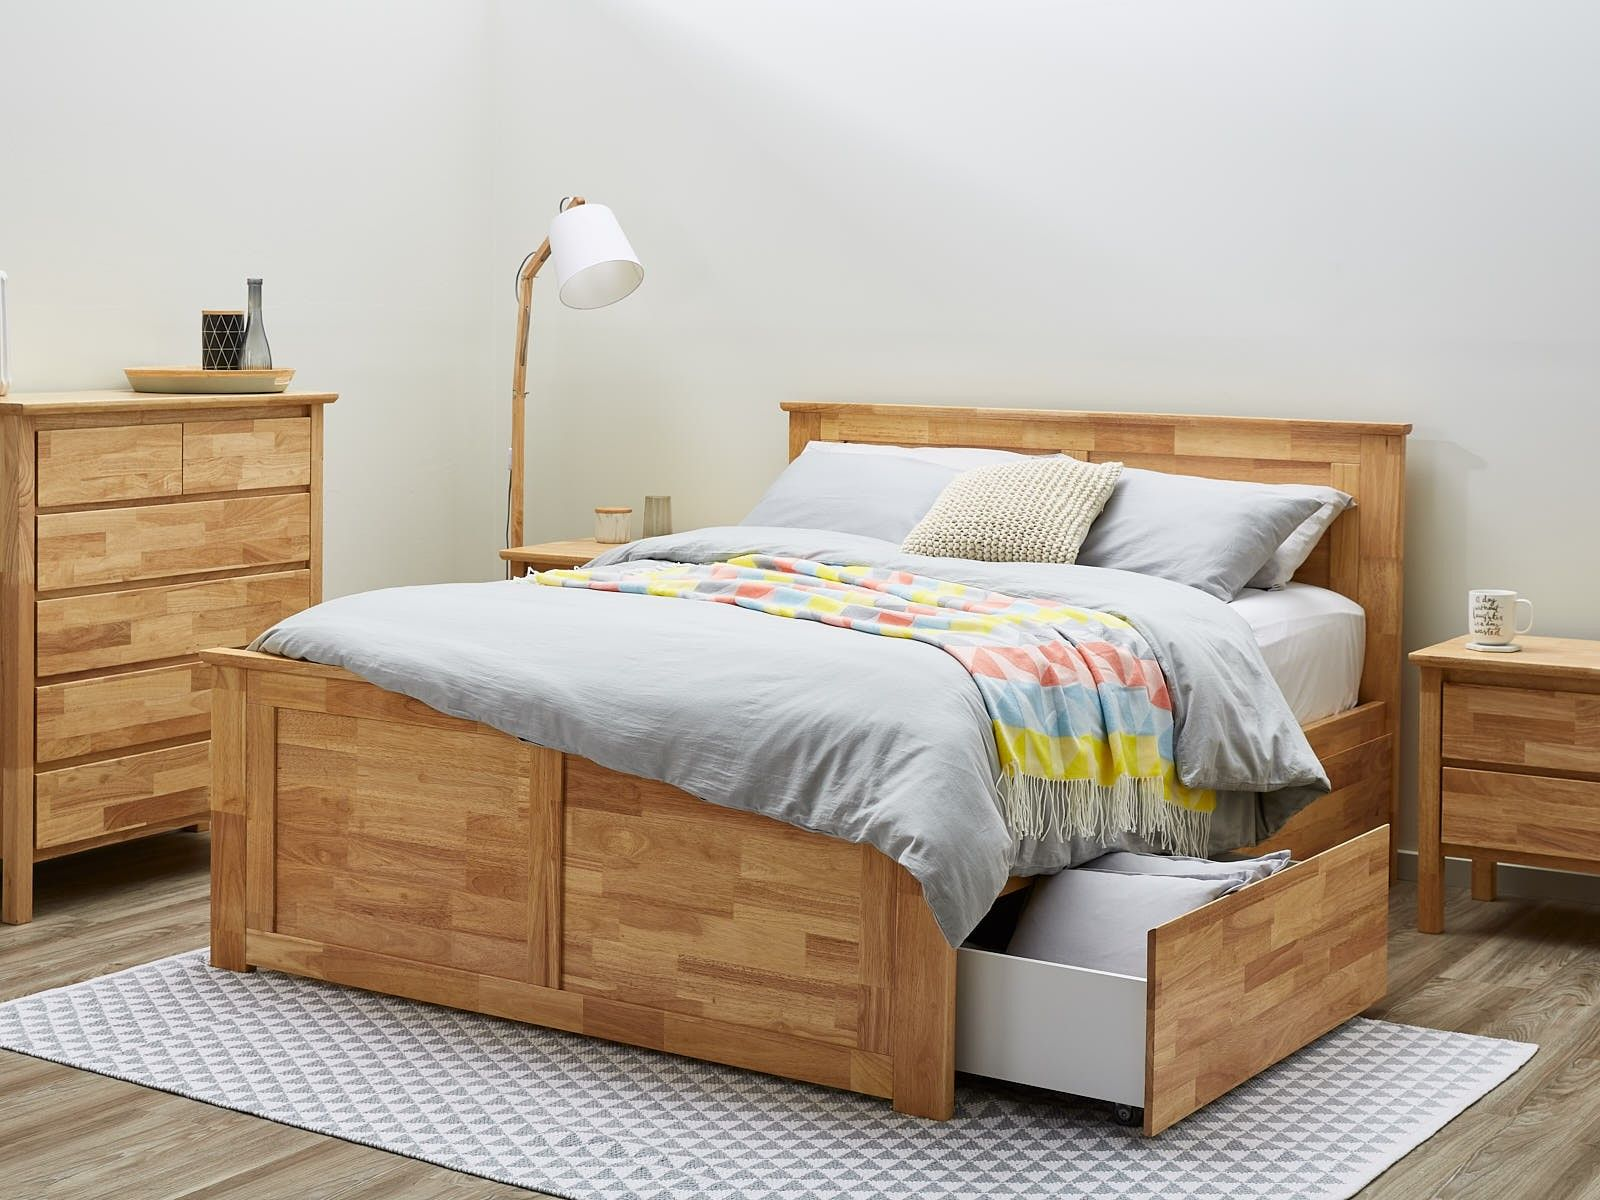 King Size Bedroom Suites With Storage Modern Natural Timber Modern Bed Frame Bed Frame With Storage King Bed Frame